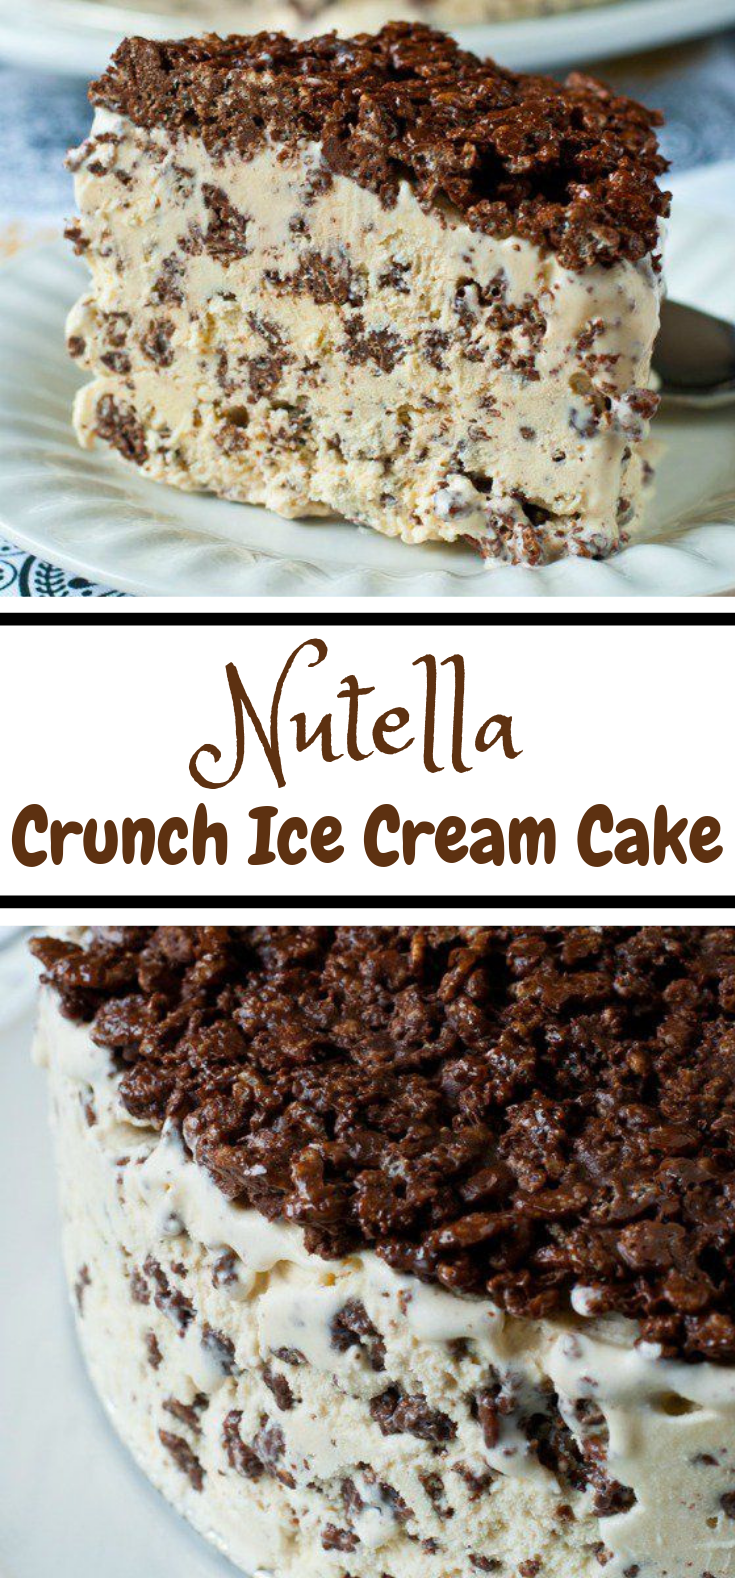 Nutella Crunch Ice Cream Cake #Nutella #IceCream